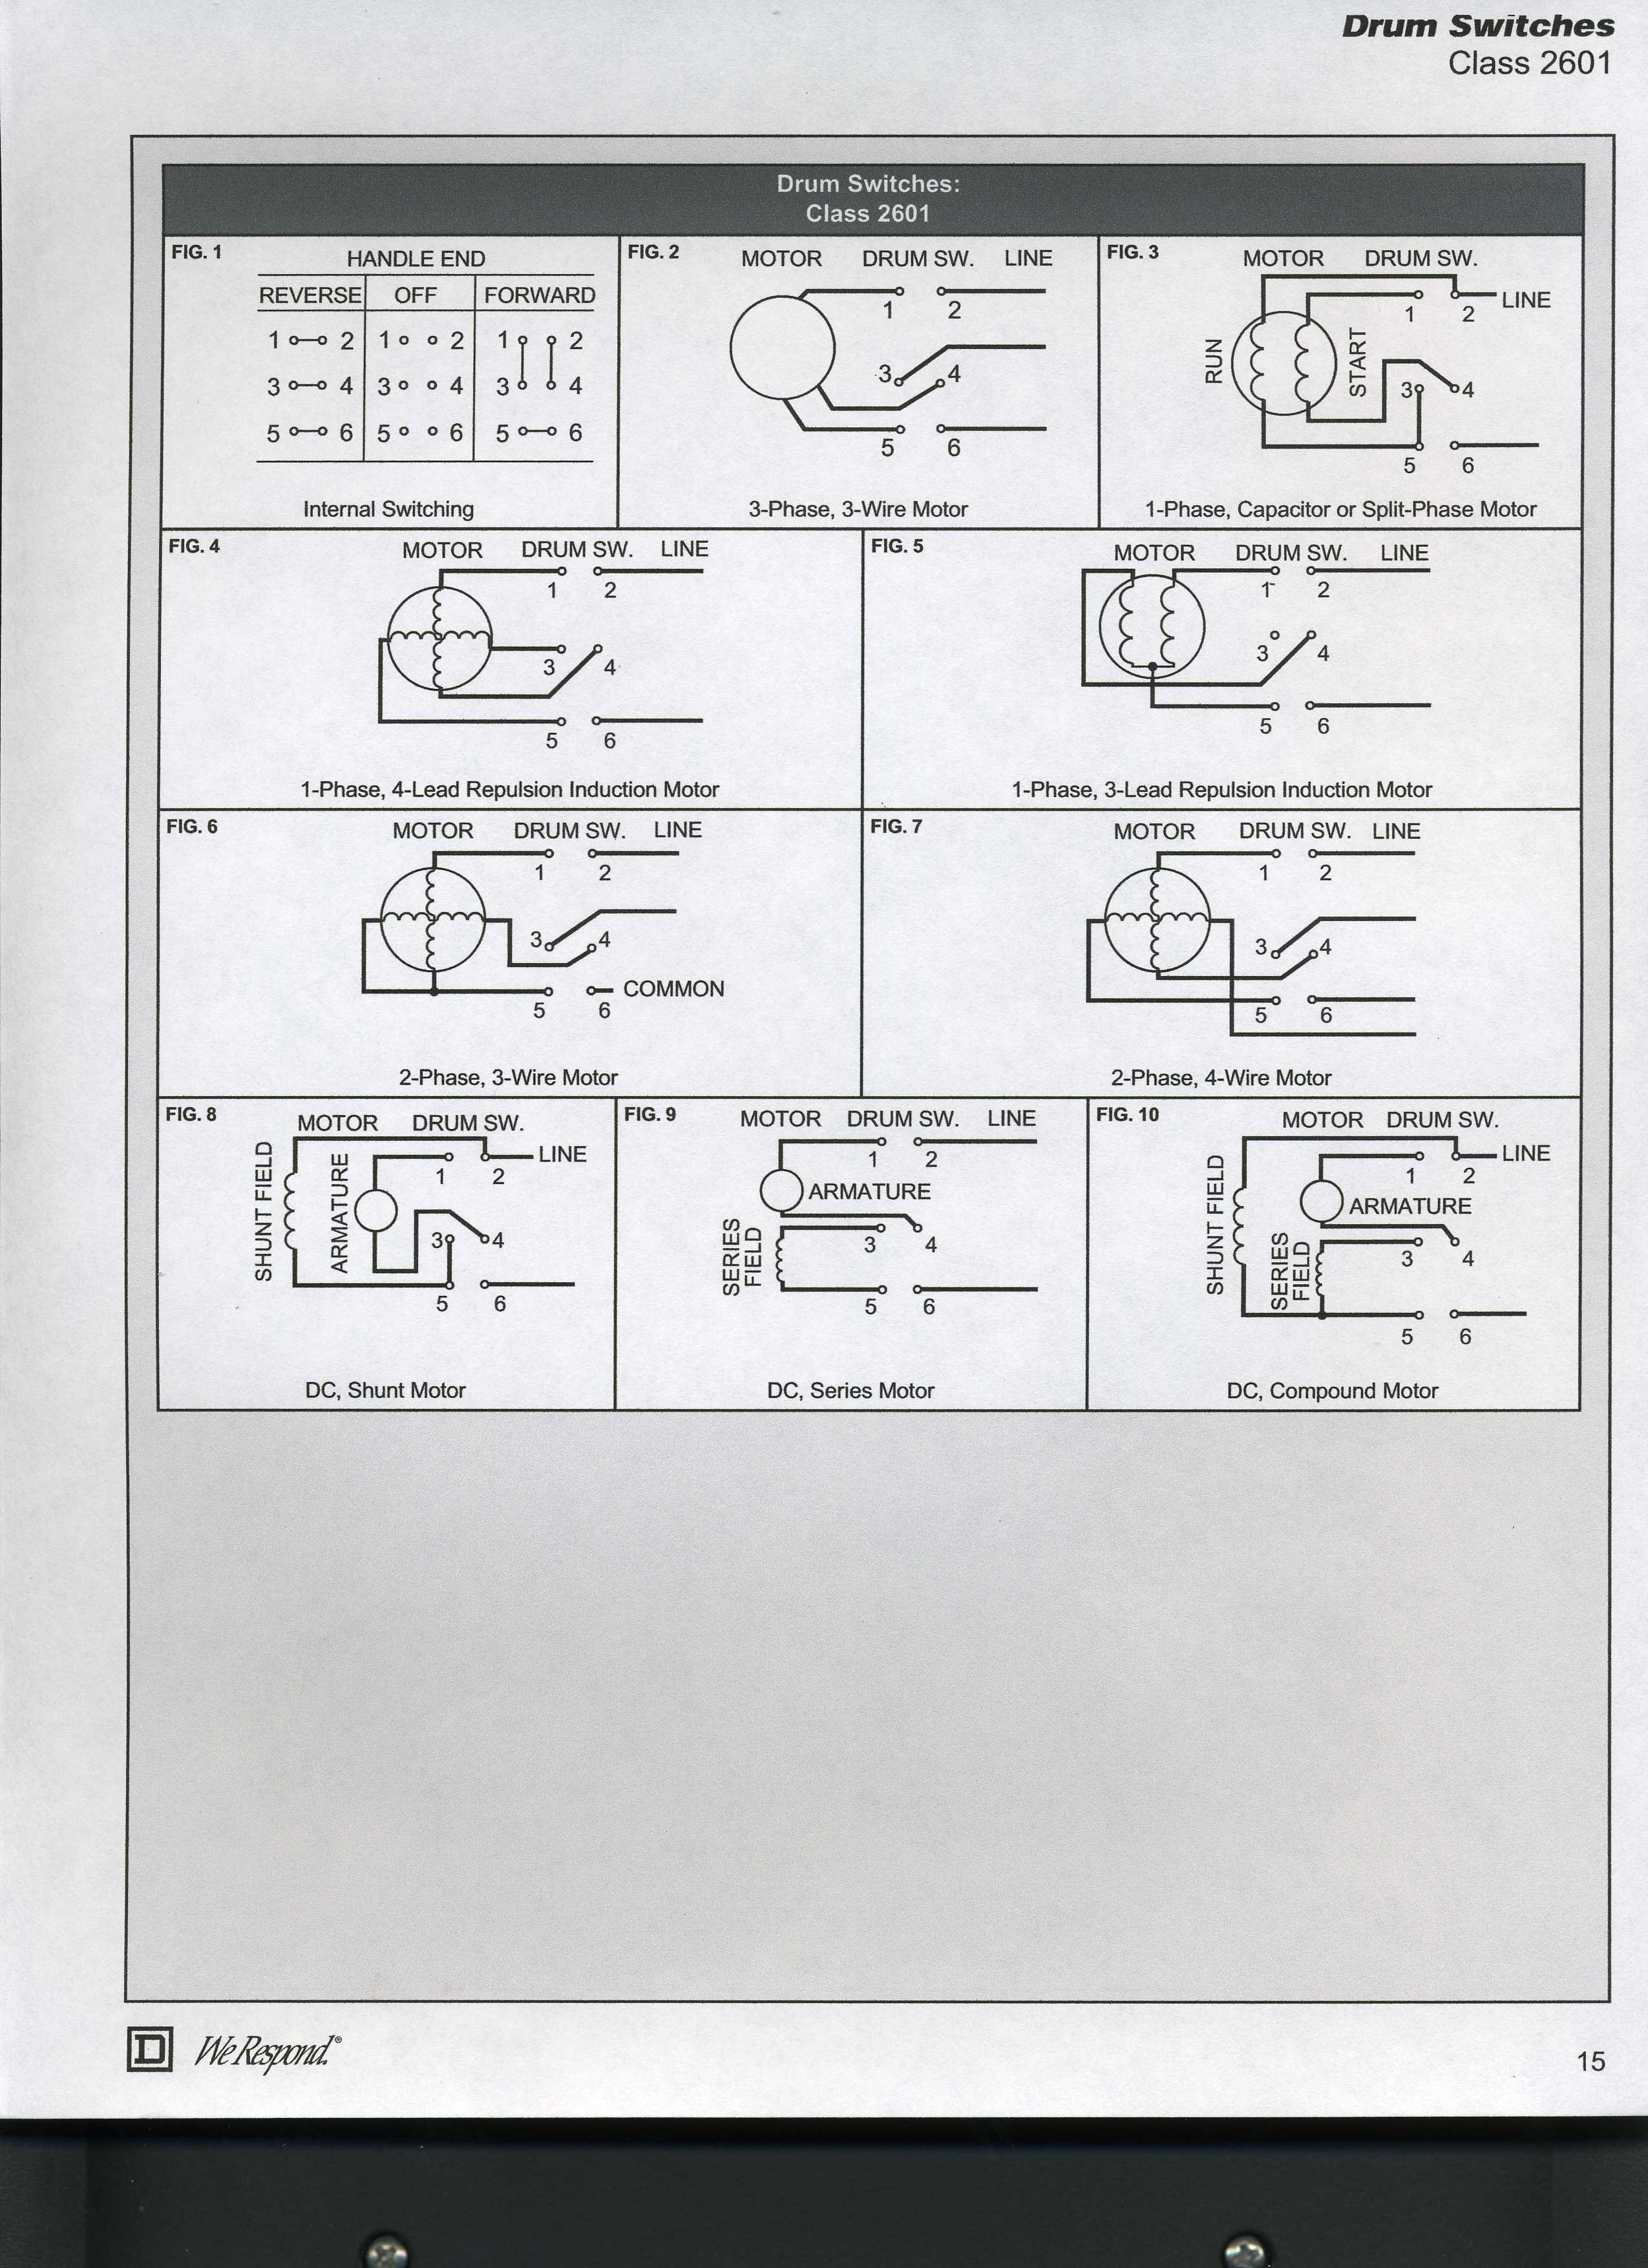 weg motor wiring diagrams activity diagram for library management system ddoax6pbooo cable dc electric best